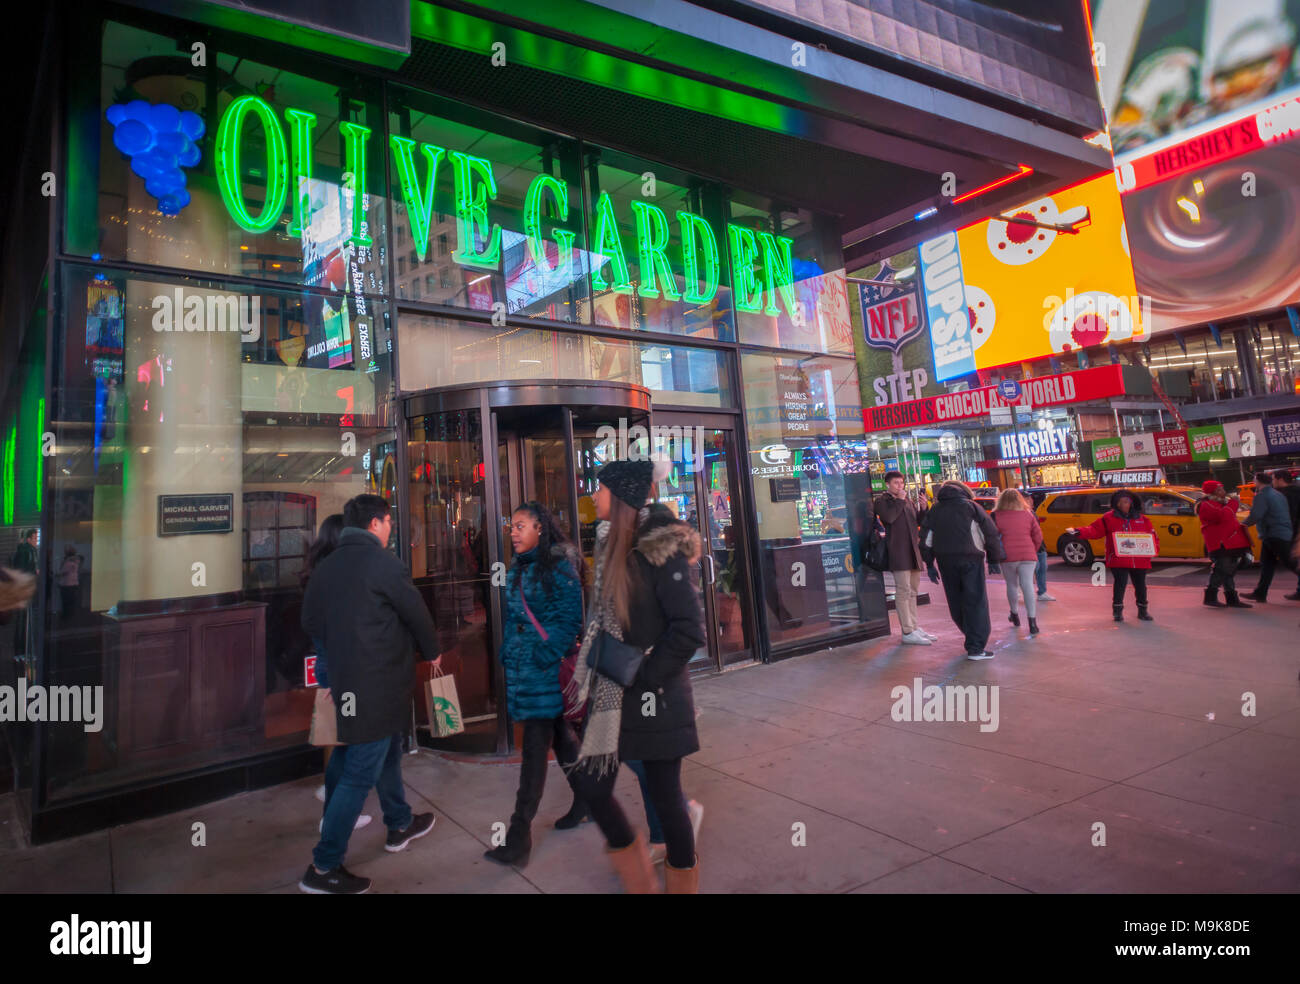 an olive garden restaurant in times square in new york is seen on tuesday march 20 2018 richard b levine - Olive Garden New York